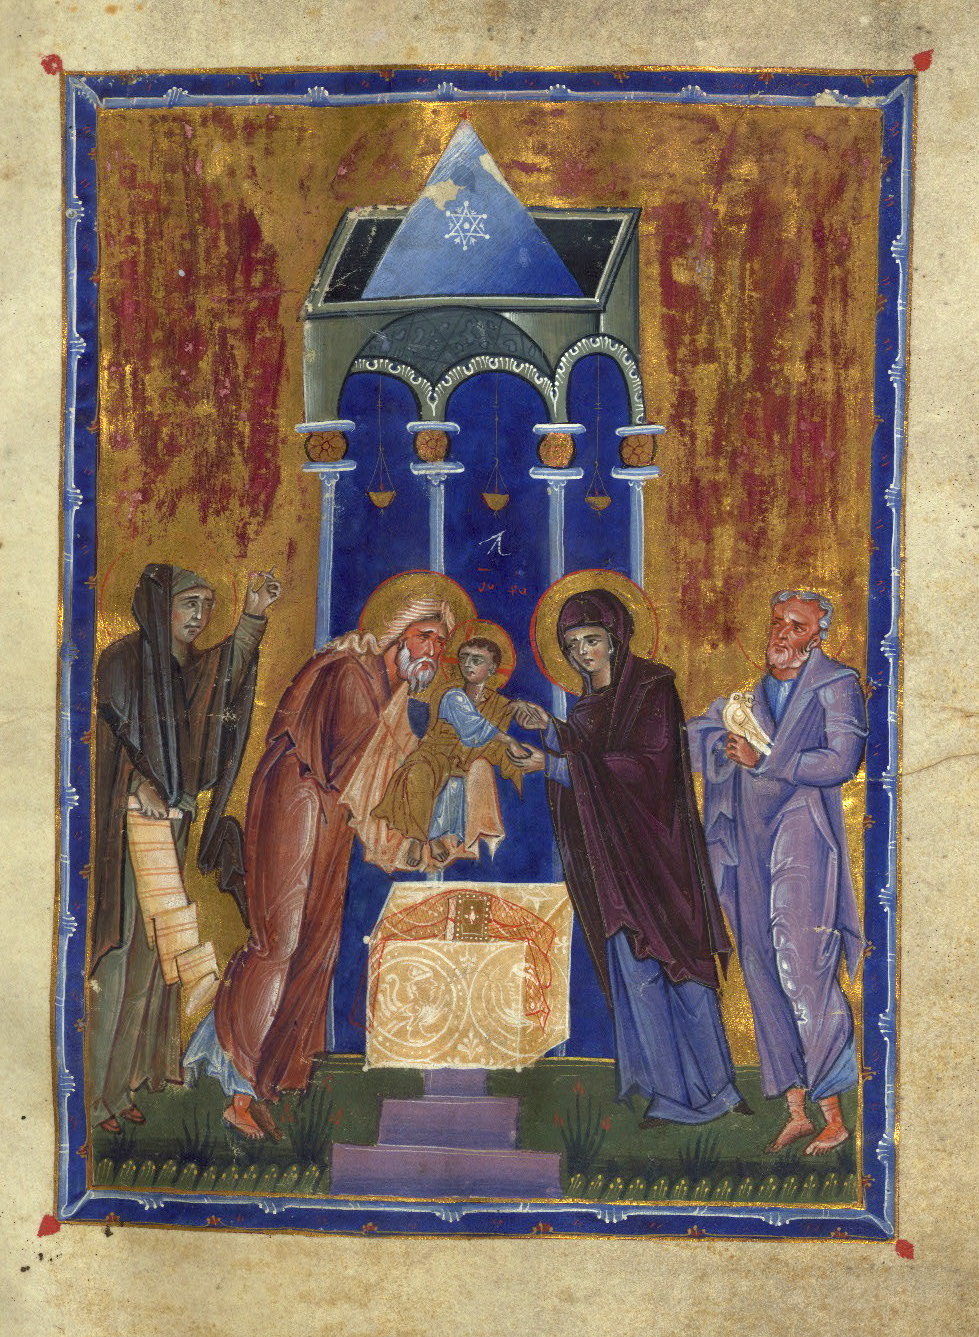 Figure 4. Prophetess Anna holding pseudo-inscribed scroll at the Presentation of Christ in the T'oros Roslin Gospels. Dated 1262. Baltimore, Walters Art Museum, W.539, fol. 211r.